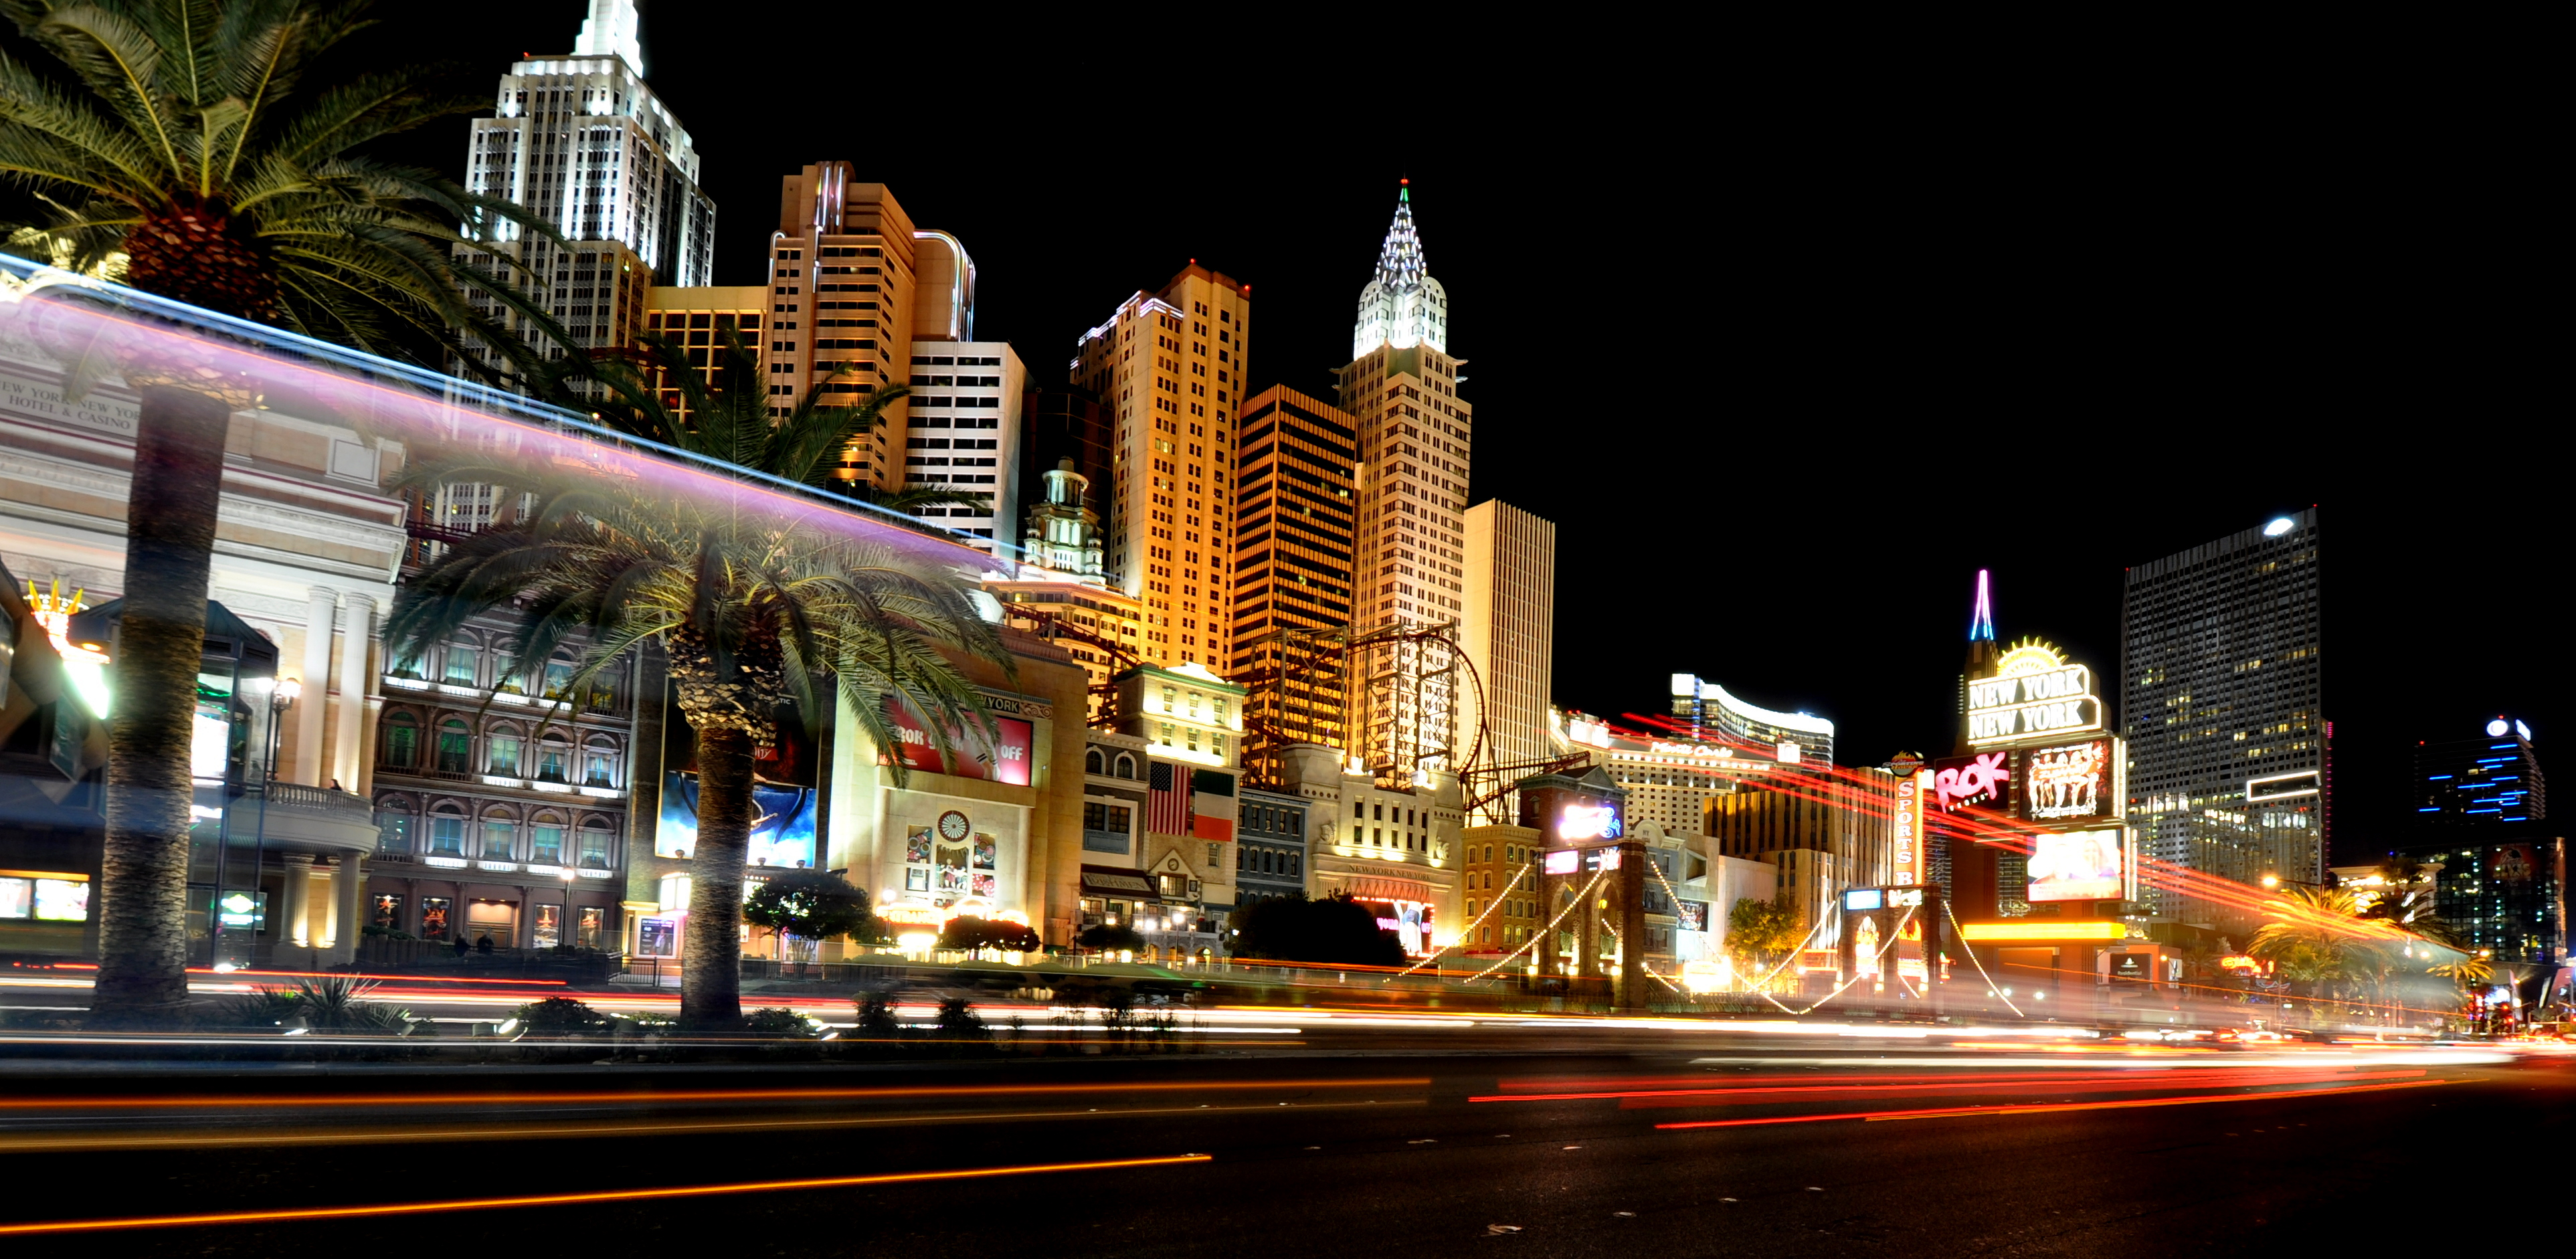 Las Vegas Strip At Night Bilderklau Im Internet Finden